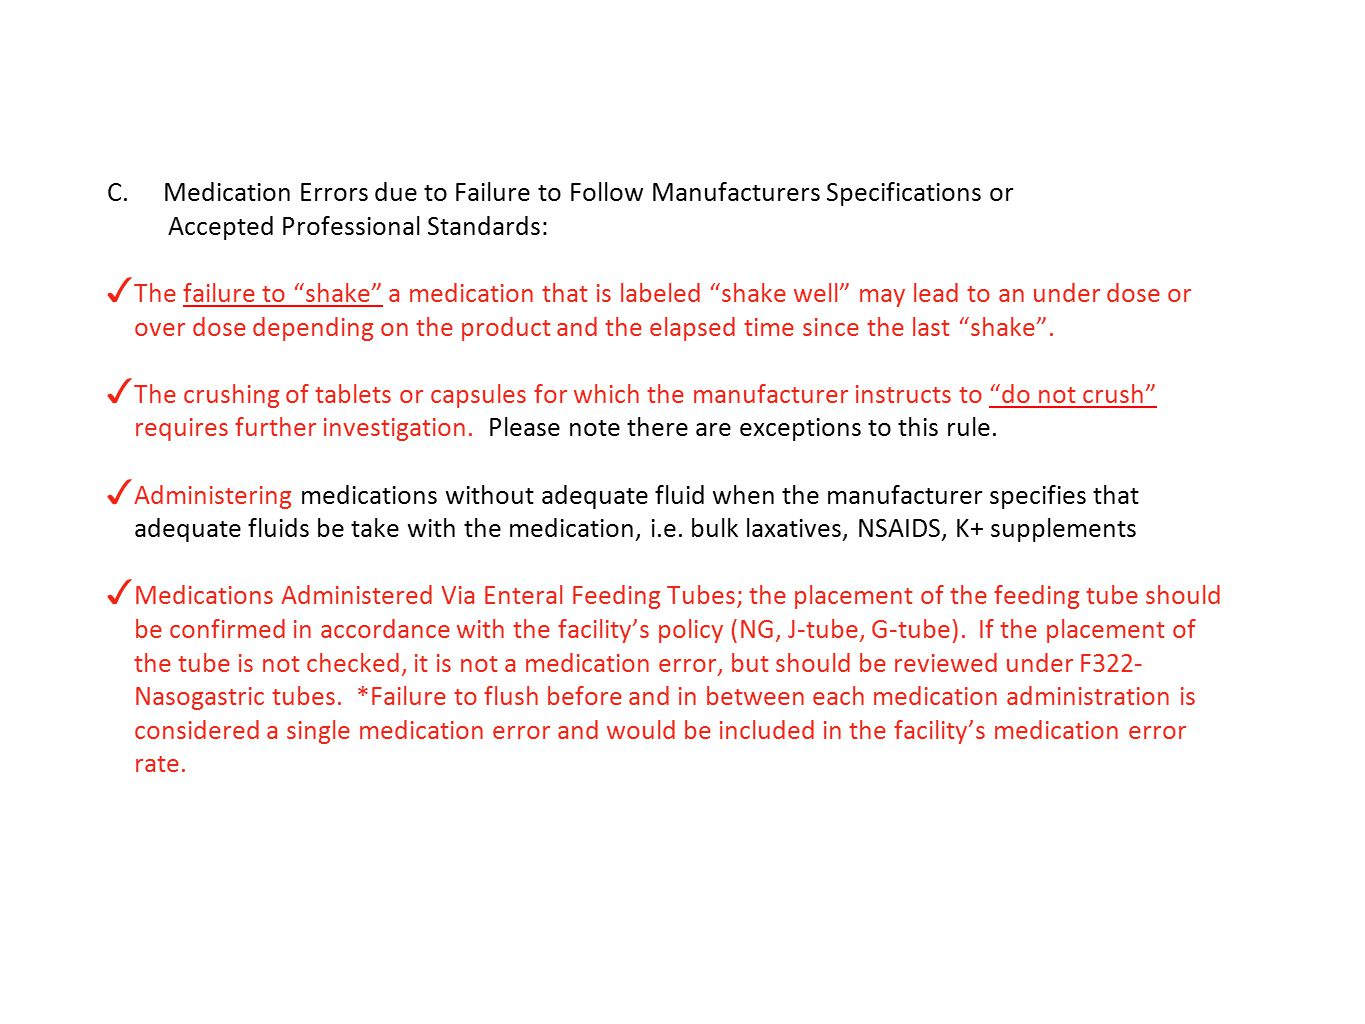 Medication Errors due to Failure to Follow Manufacturers Specifications or